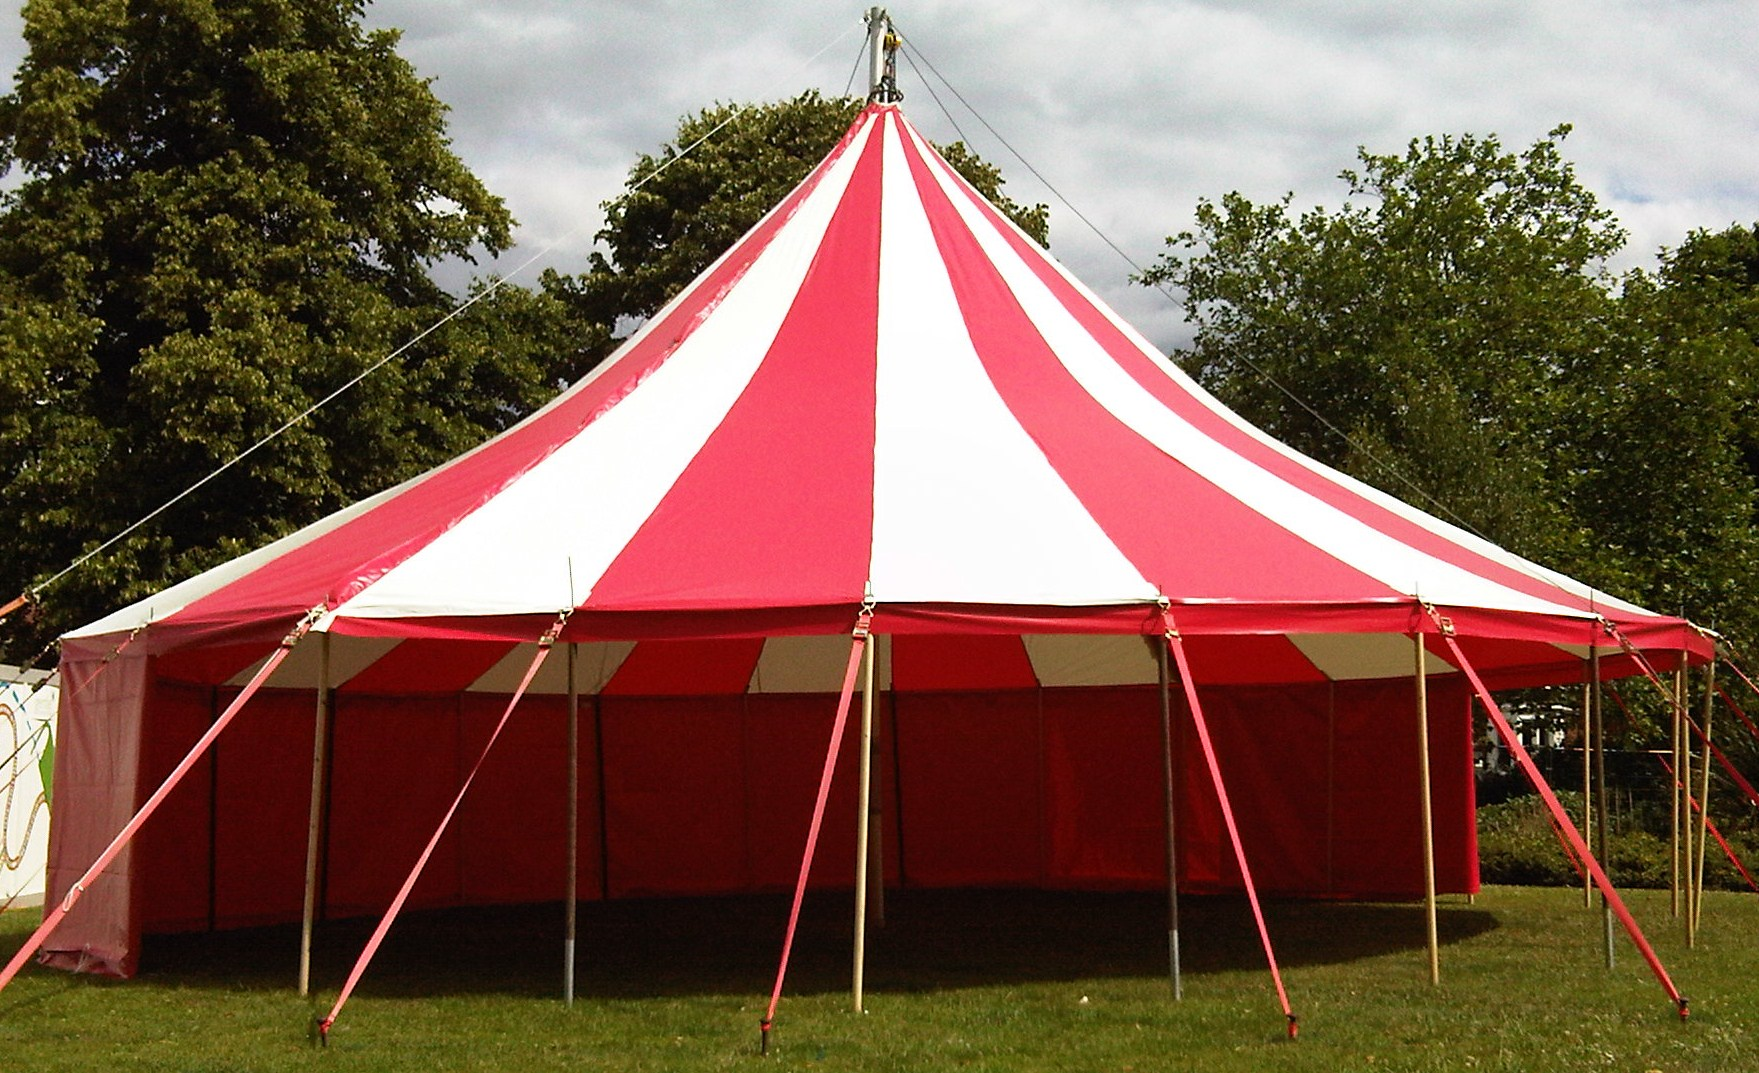 Big top hire circus shows marquee hire & big top hire - circus shows marquee hire